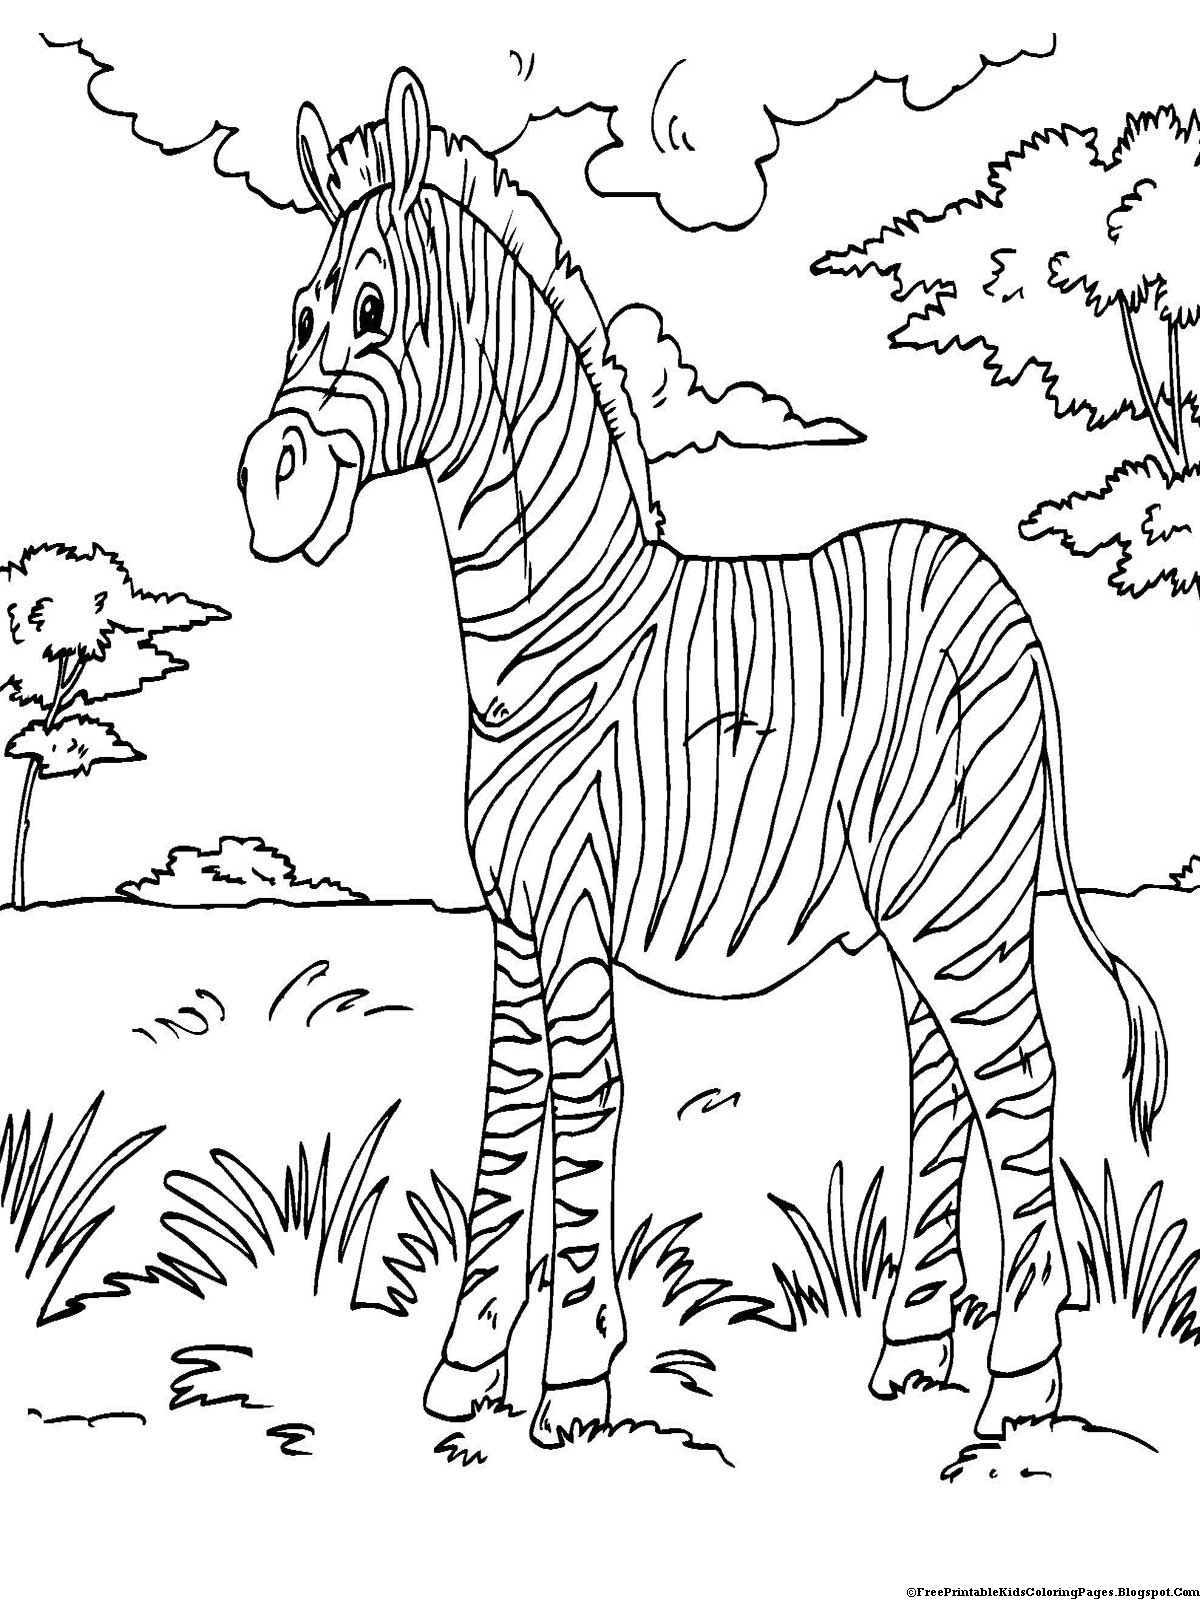 Printables & Coloring Pages Fun Games for Kids PBS